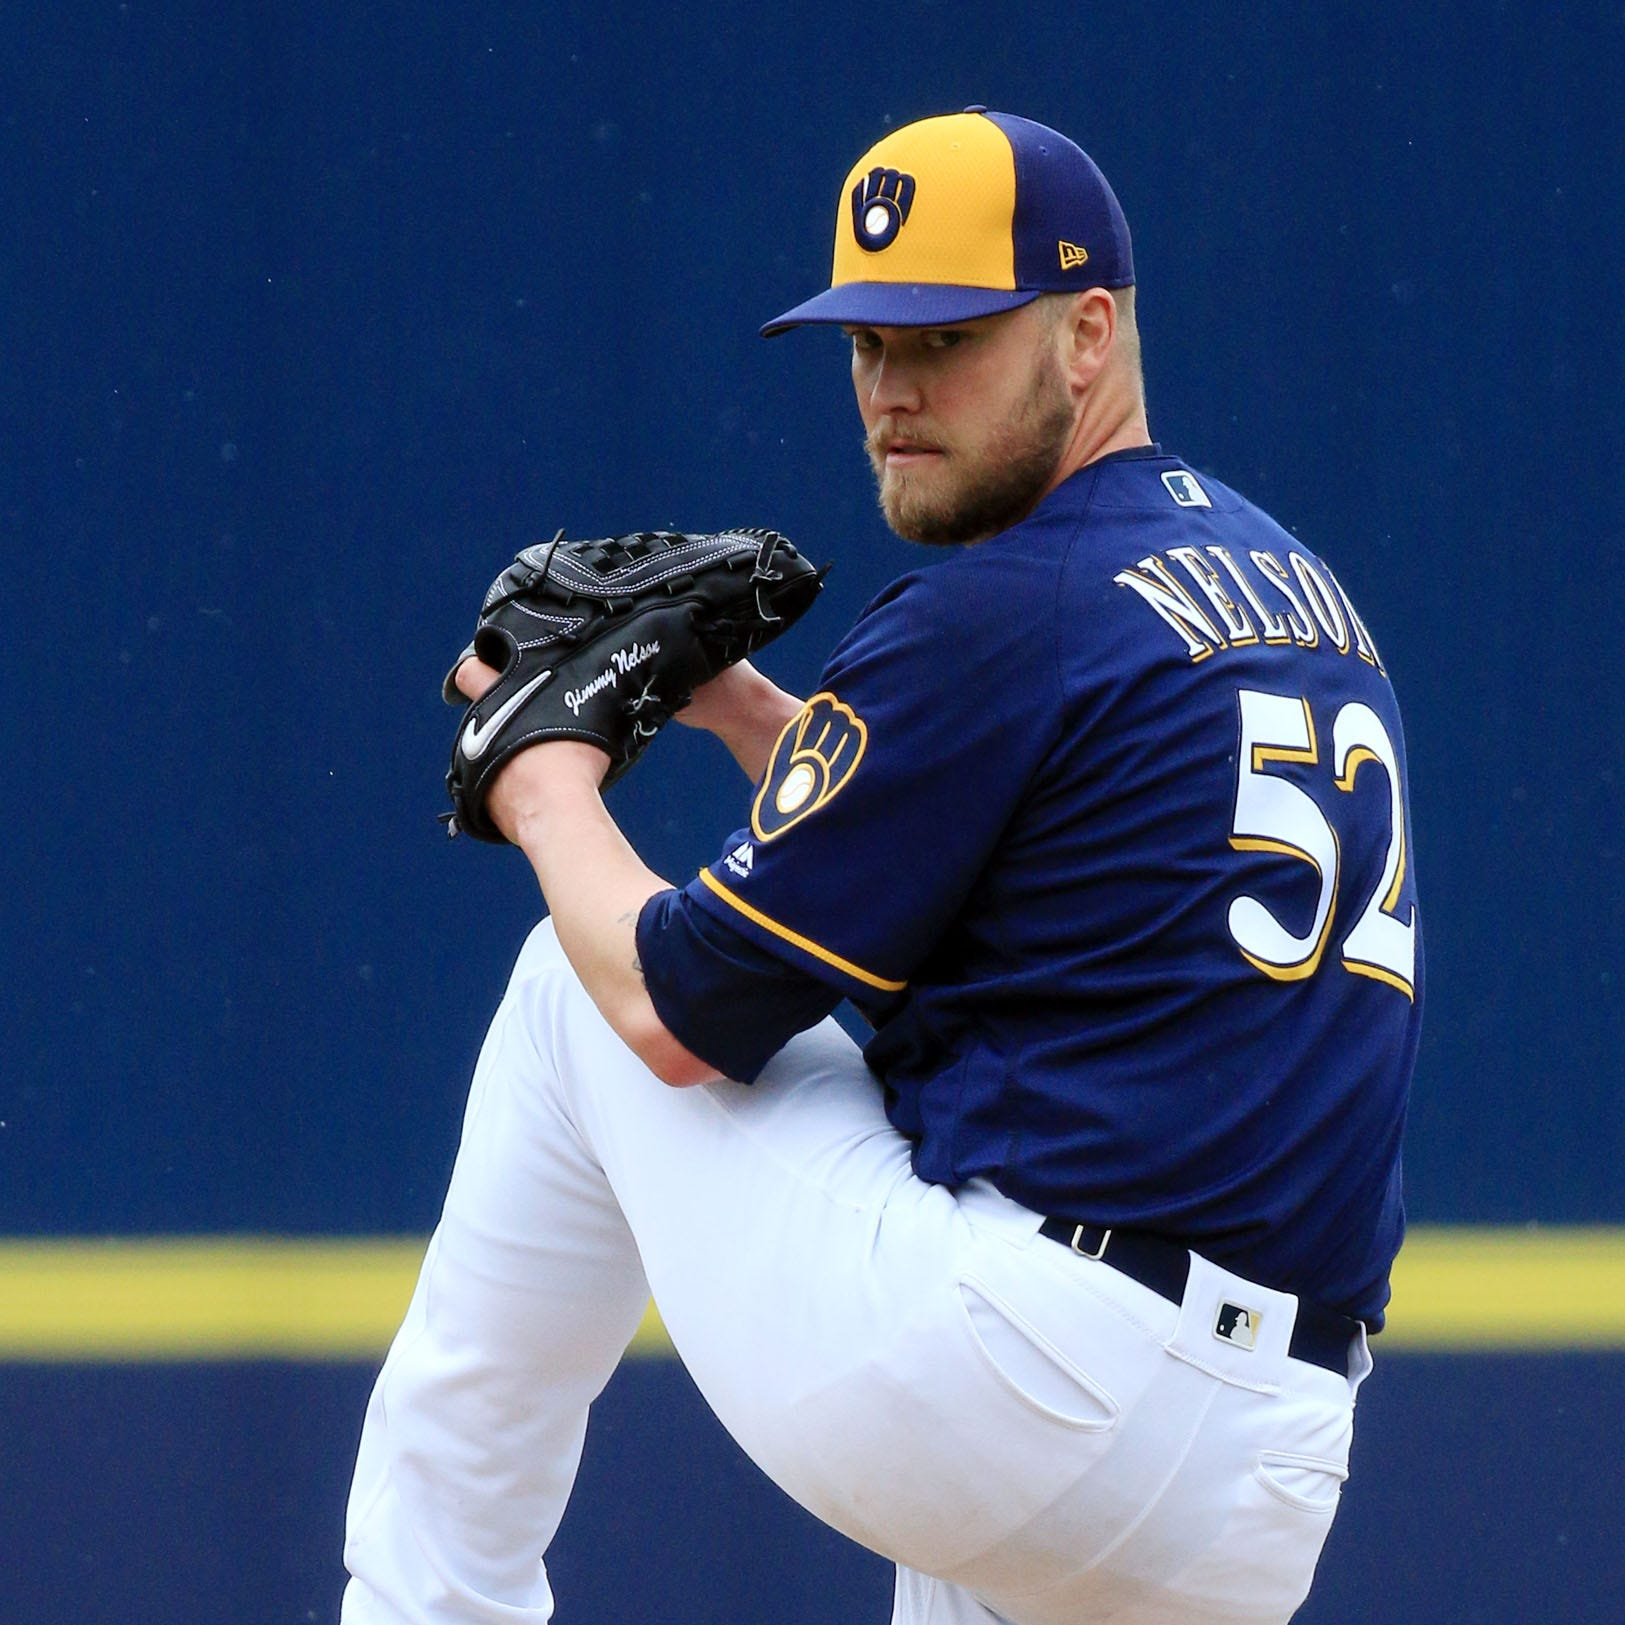 Jimmy Nelson, Jhoulys Chacín expected to make final spring outings in minor-league games